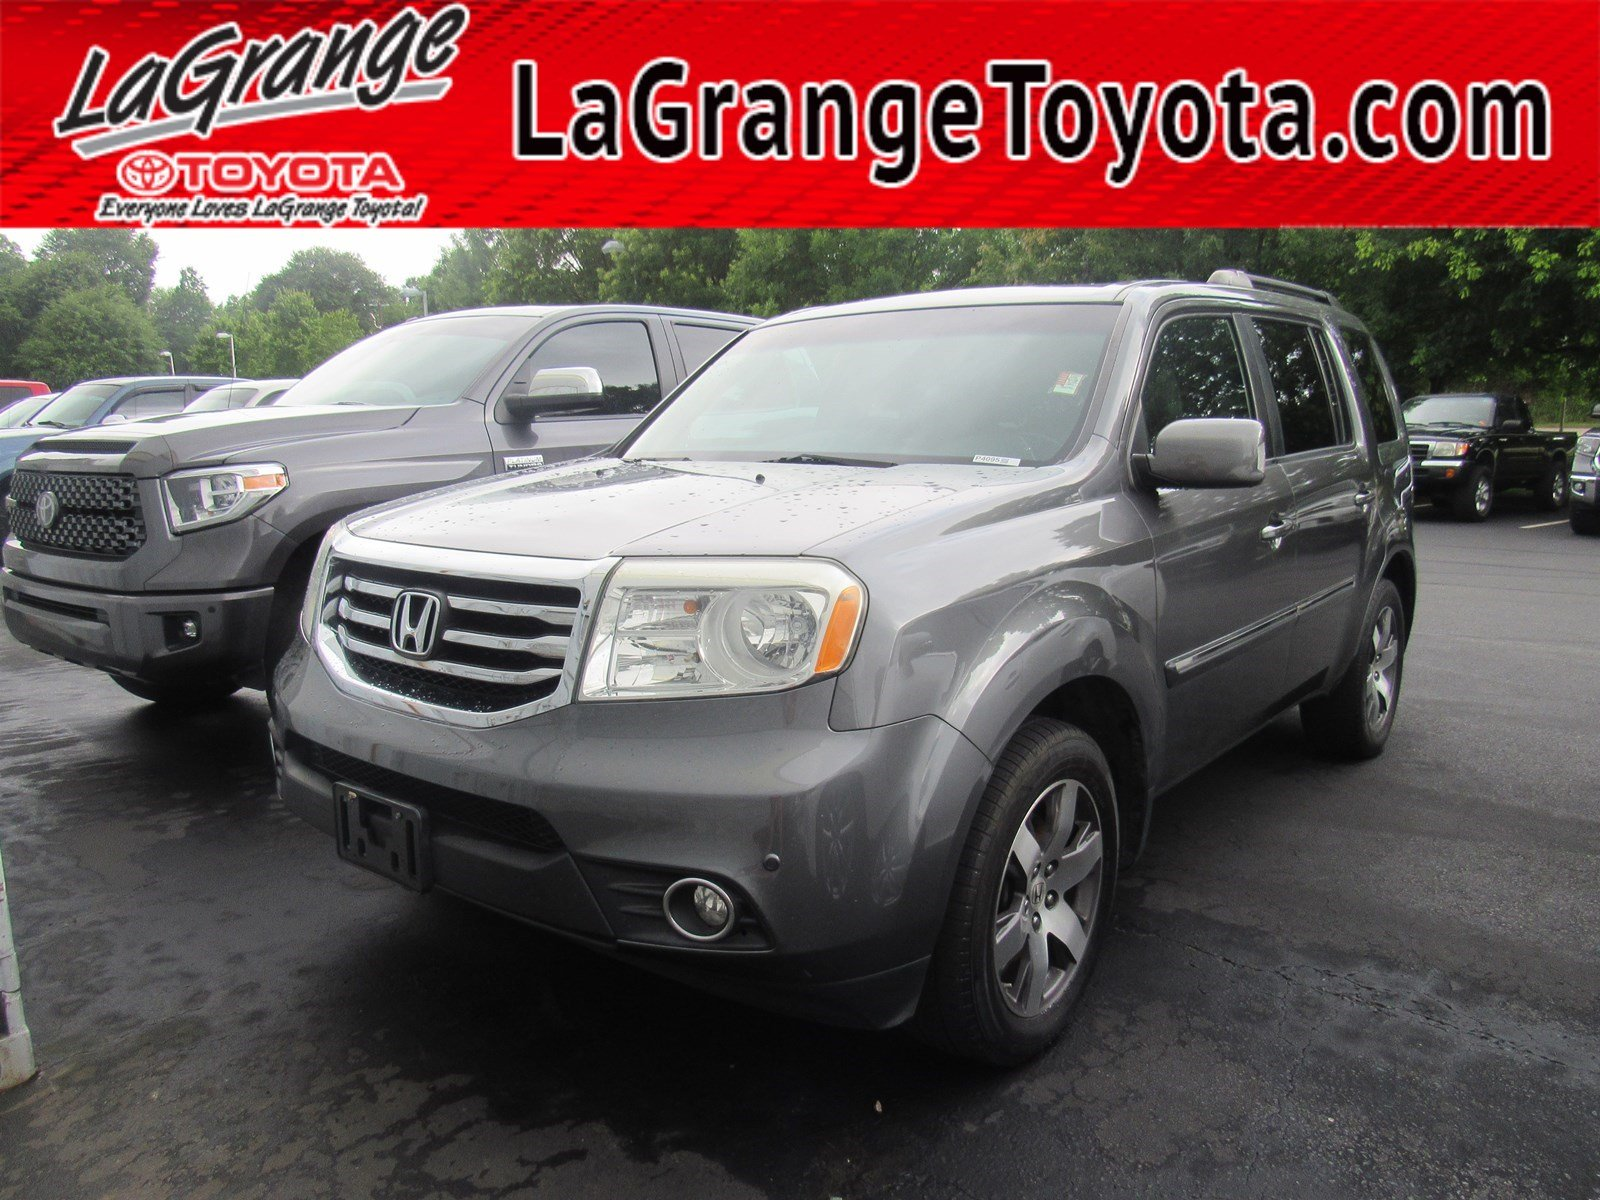 Pre-Owned 2012 Honda Pilot 2WD 4dr Touring w/RES & Navi